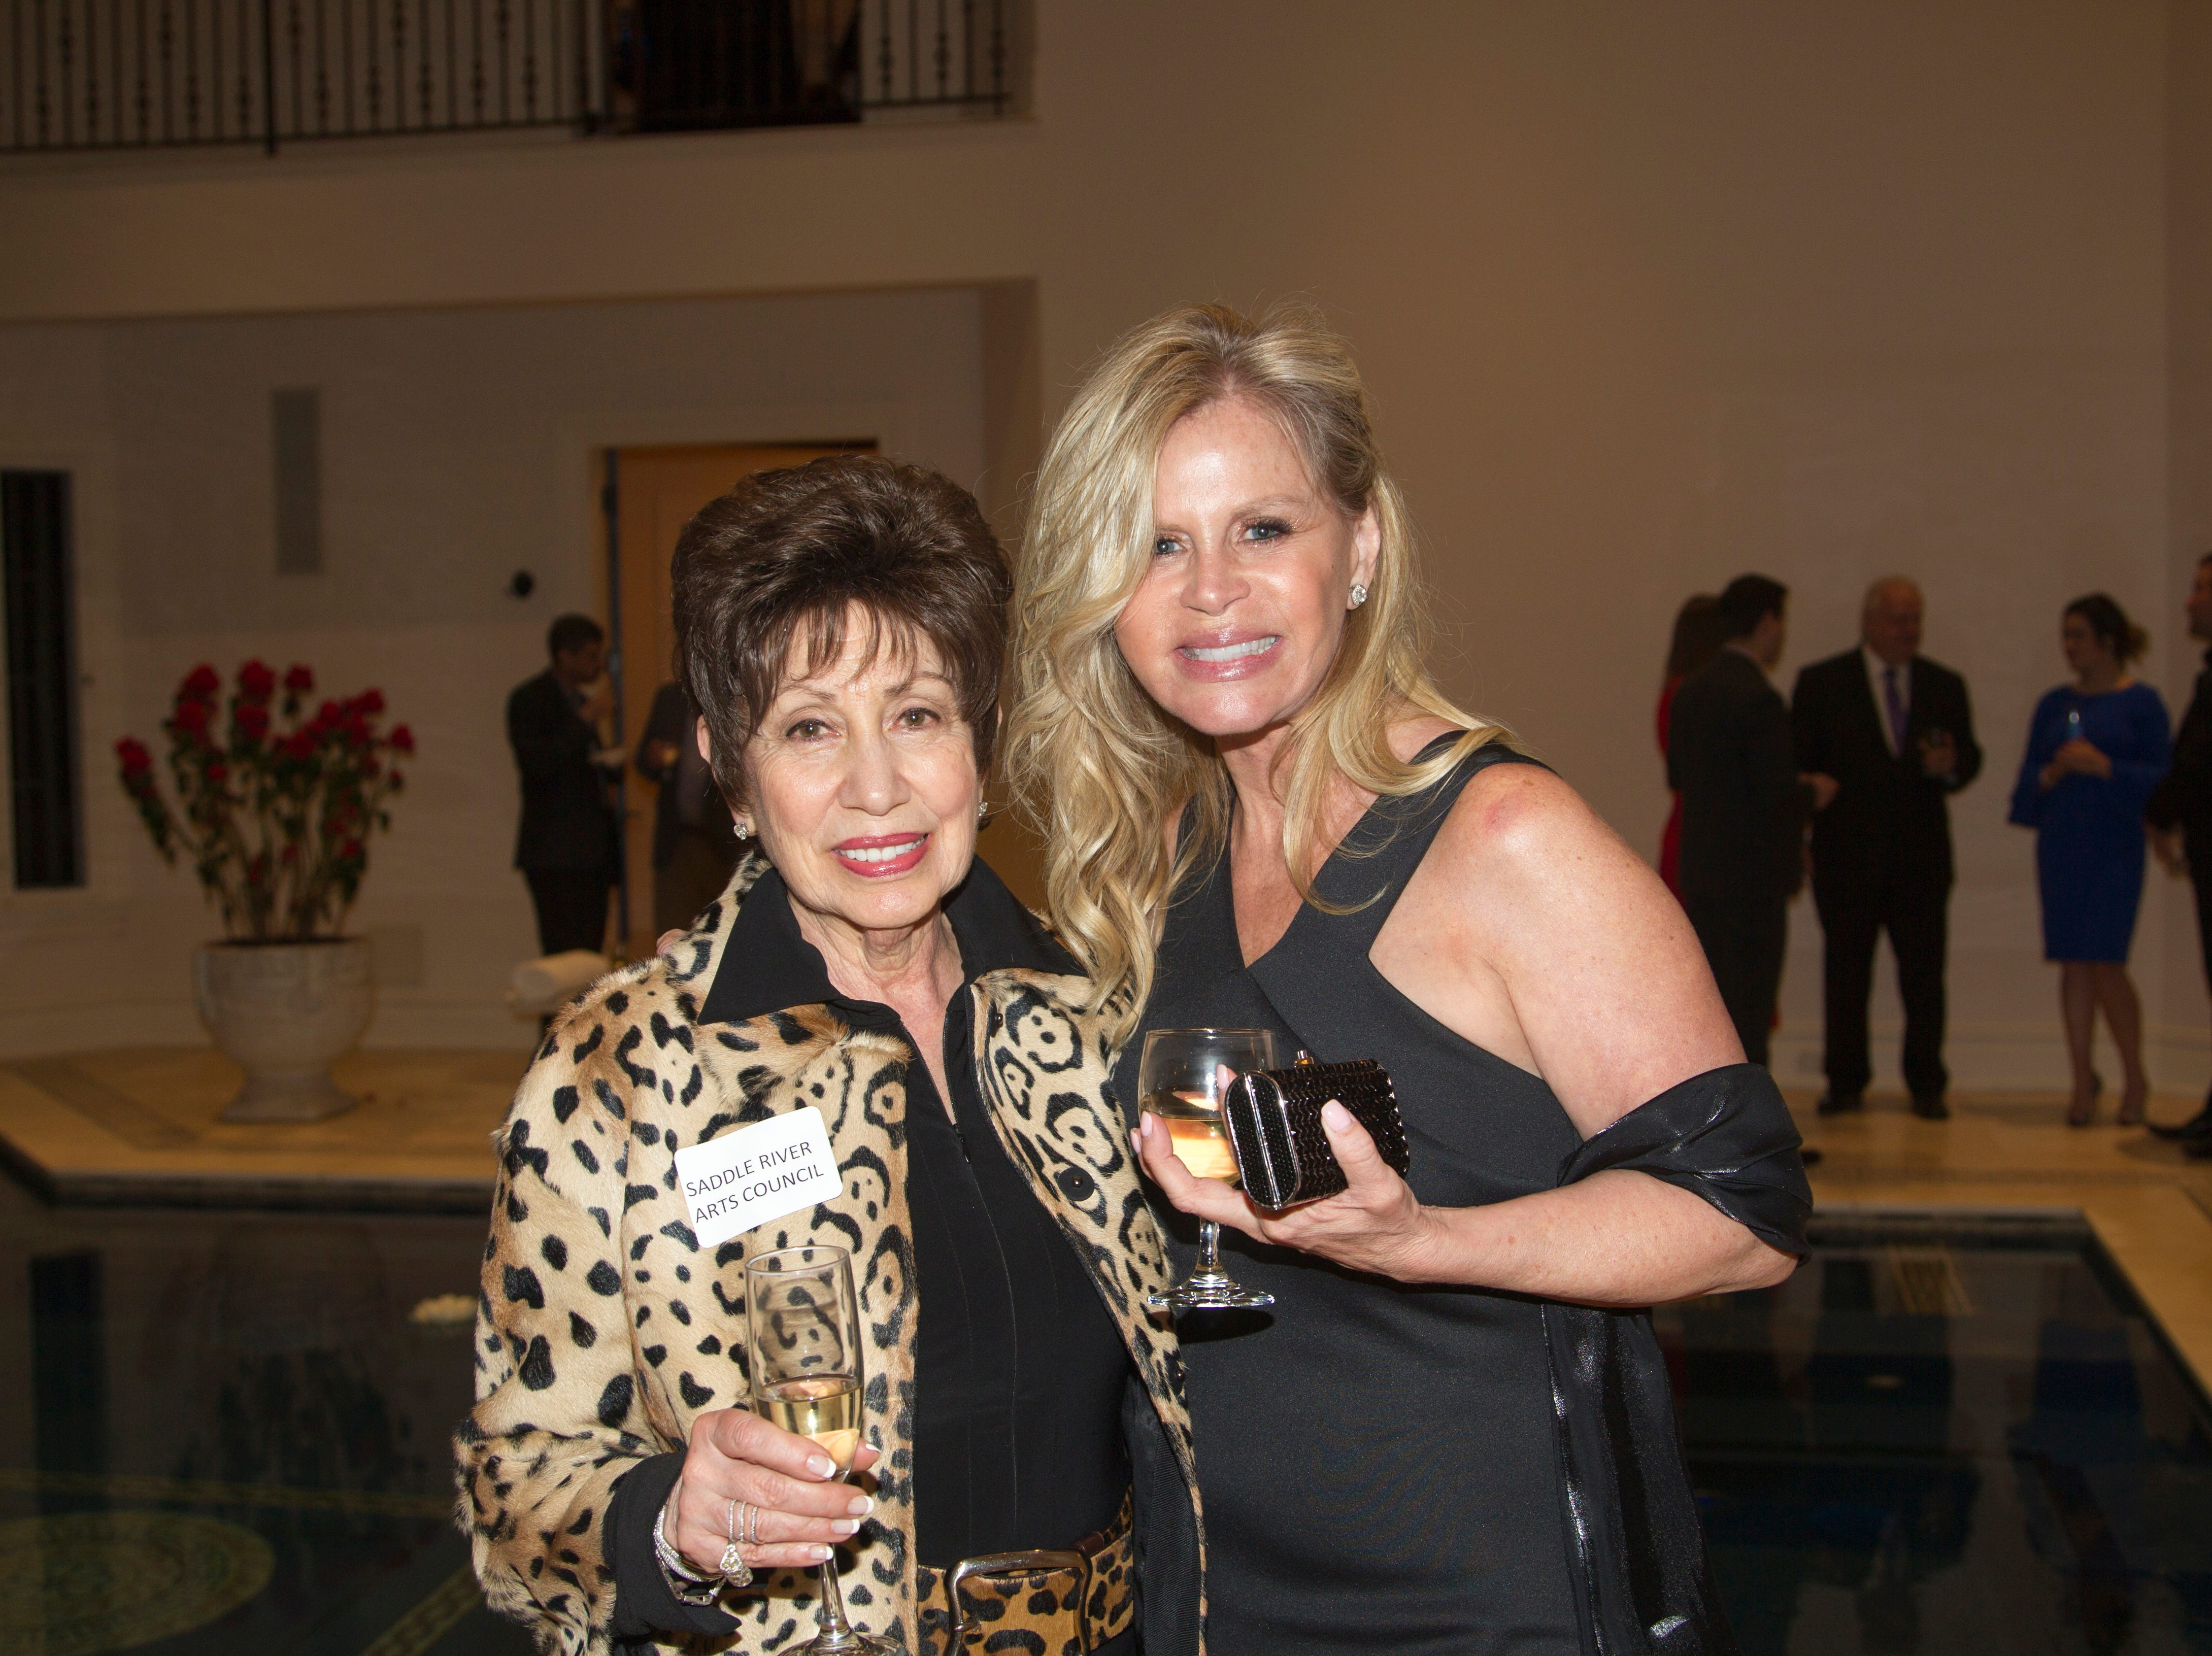 Vicki Gaily, Darcy Linares. Saddle River Arts Council presents An Evening of Giving Back featureing Eric Genuis in Saddle River. 03/30/2019